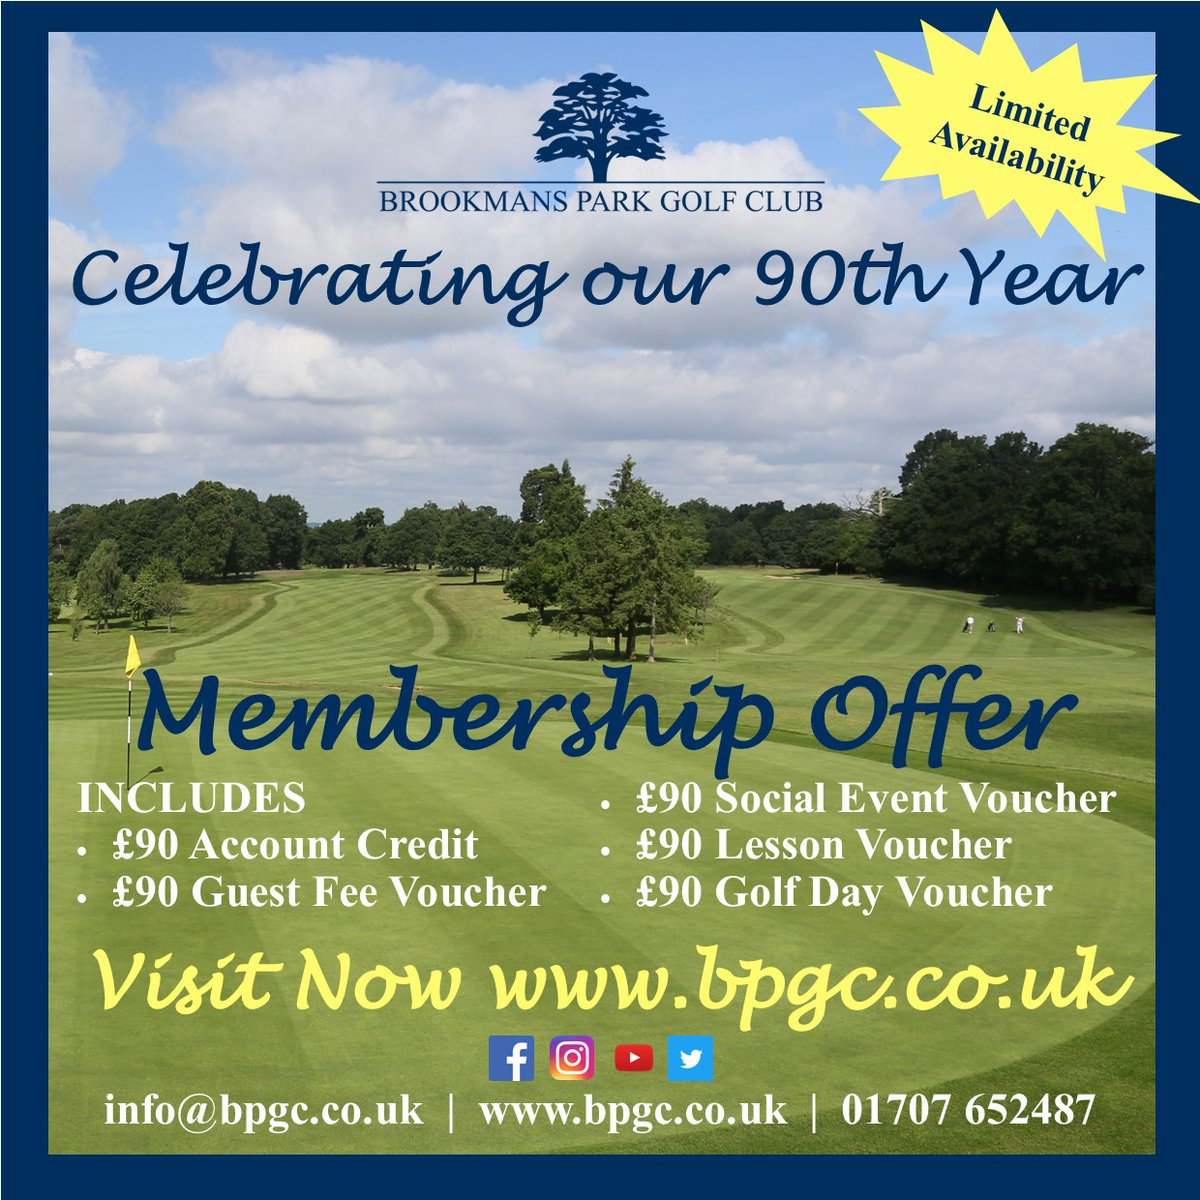 The best way to start the weekend is for you to get involved with our 90th year membership offer. For further details please visit https://www.bpgc.co.uk/ #brookmansparkgolfclub #golf #90thyear #golfingpic.twitter.com/5d8UoVJ1ni